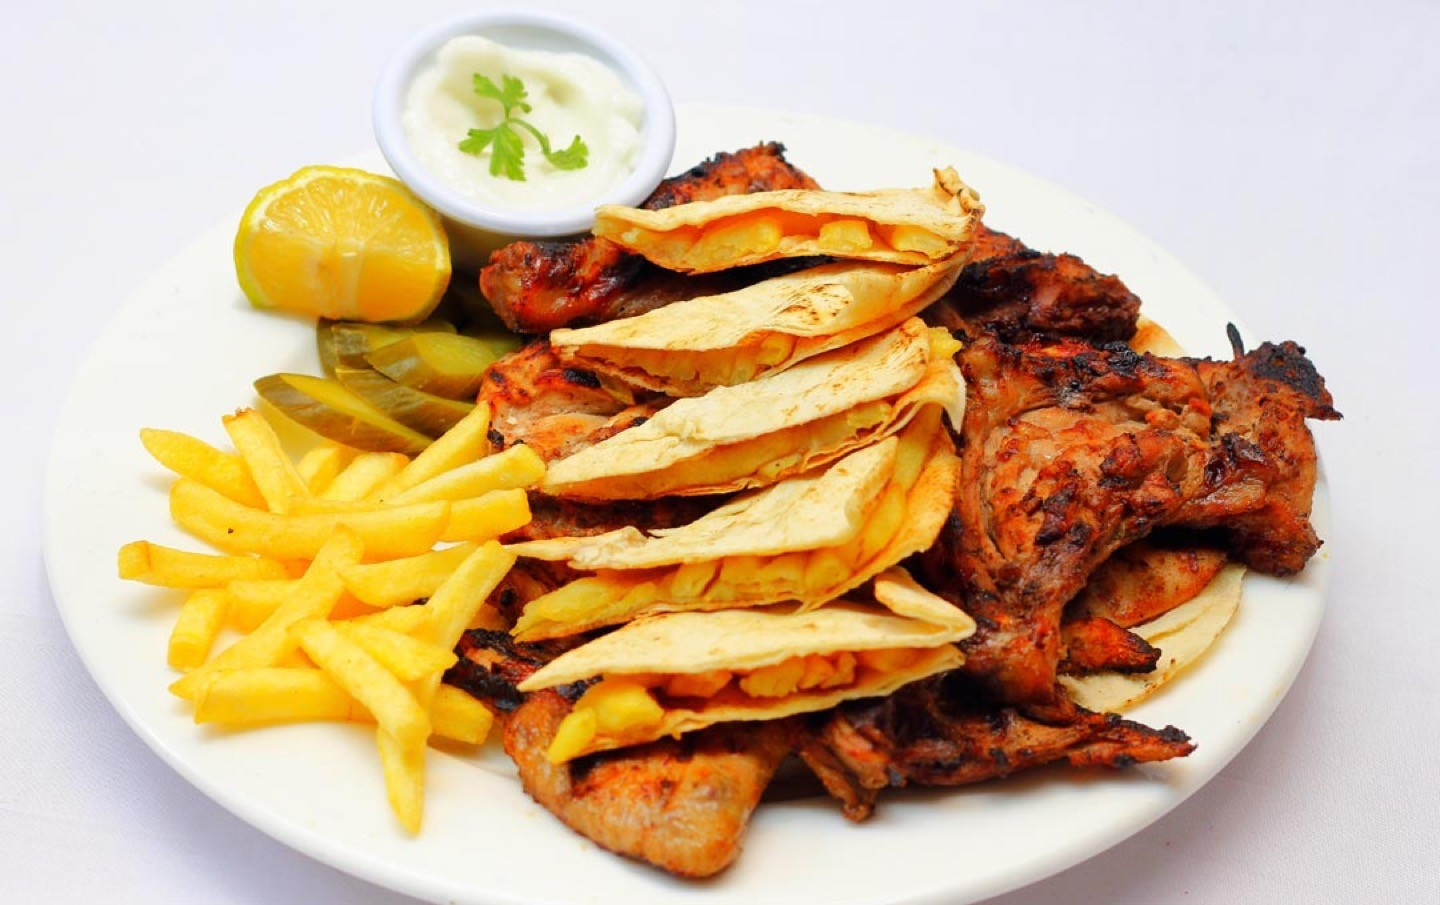 Charcoal grilled whole baby chicken